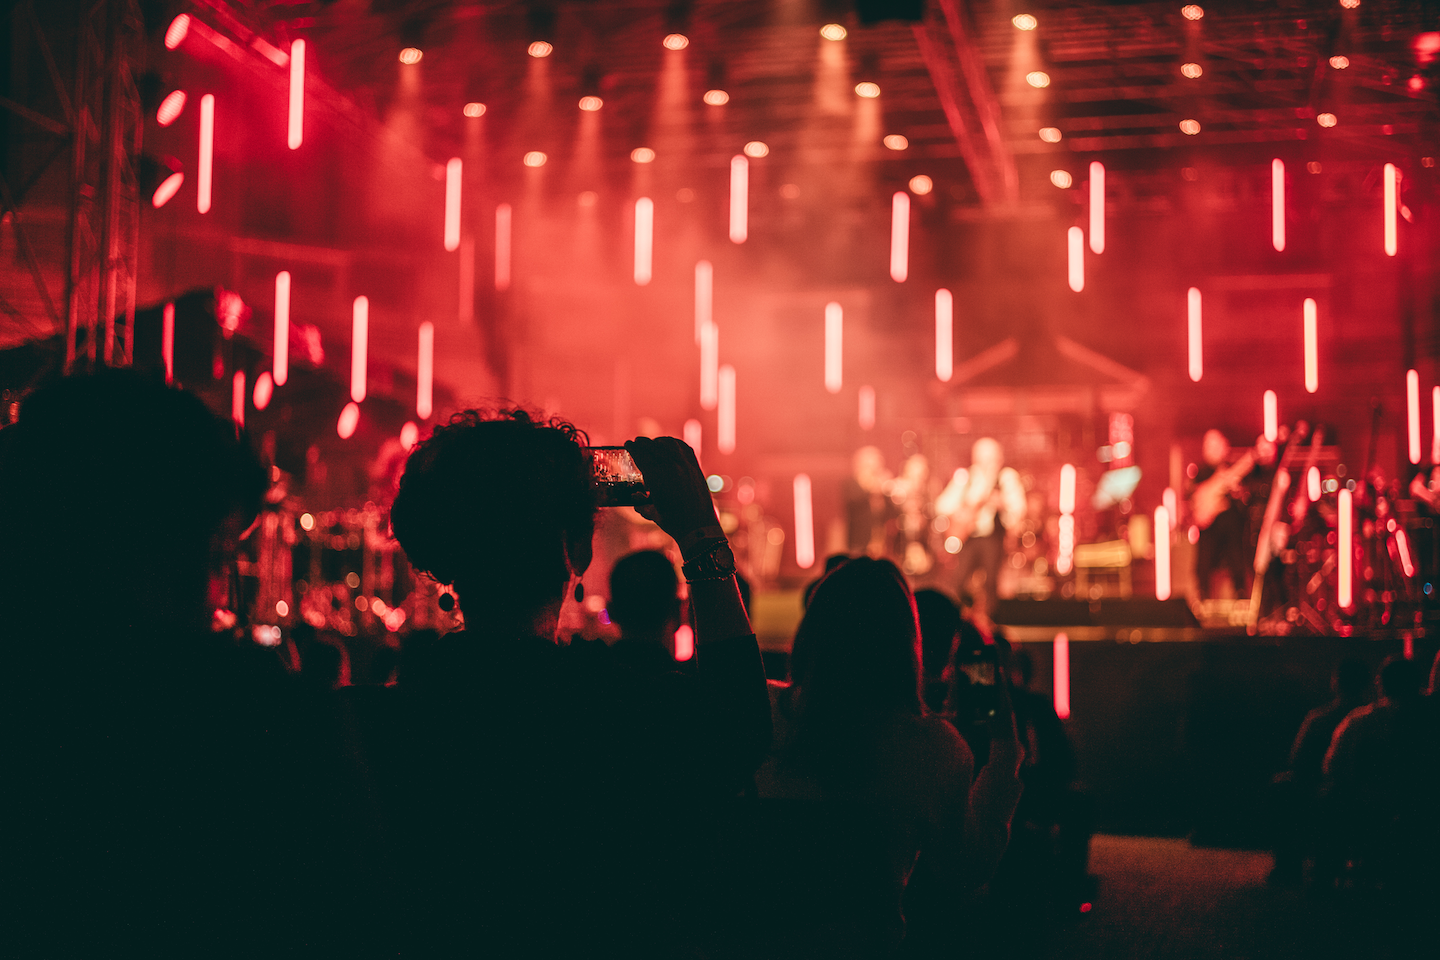 Scenography at BMW's 'Re: Imagine Music' concert with Hans Zimmer